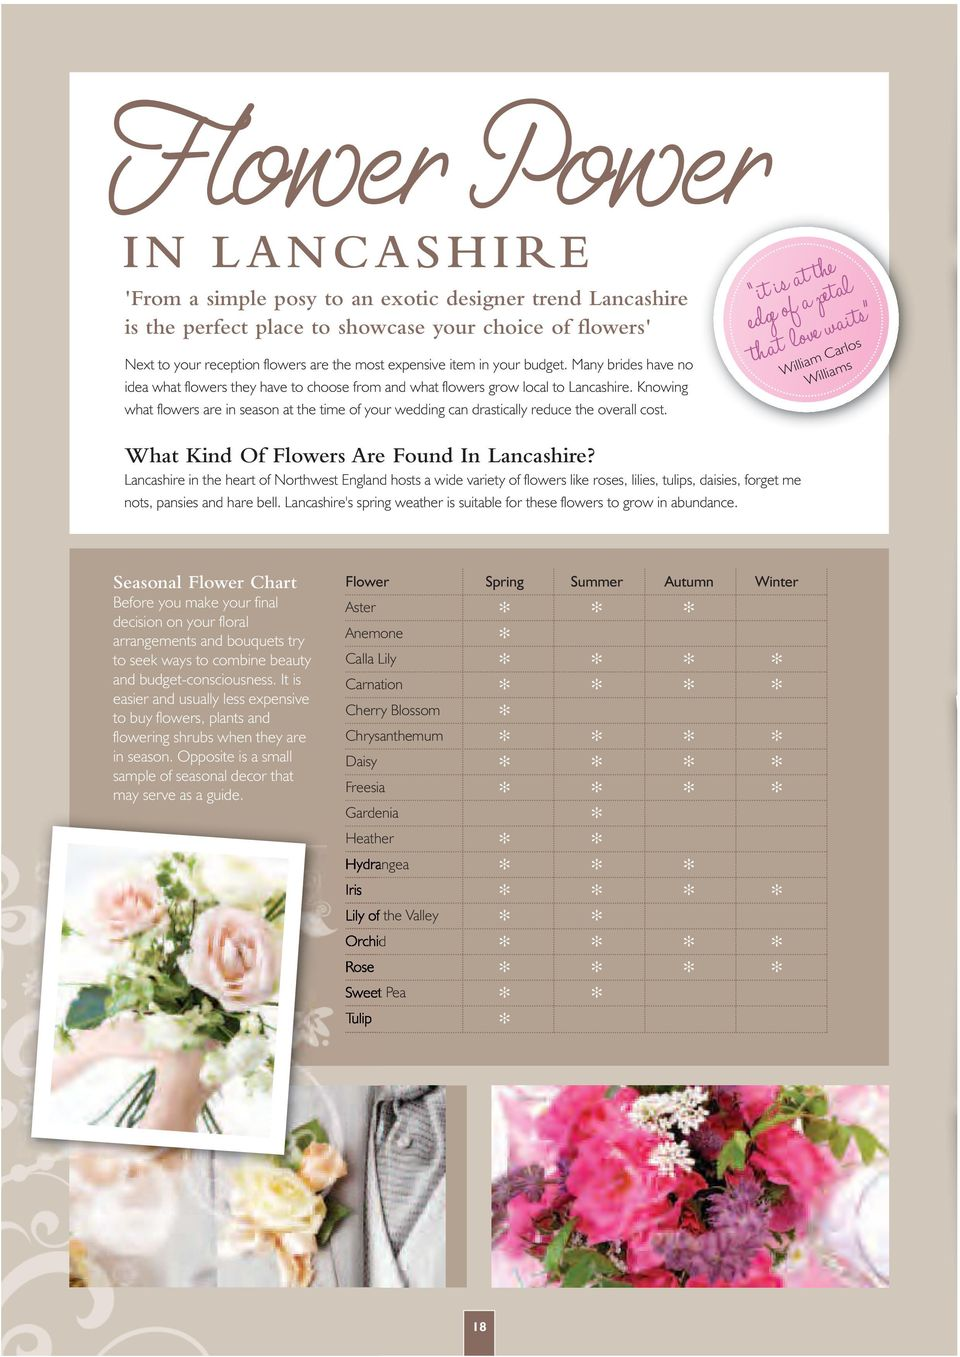 Knowing what flowers are in season at the time of your wedding can drastically reduce the overall cost. What Kind Of Flowers Are Found In Lancashire?